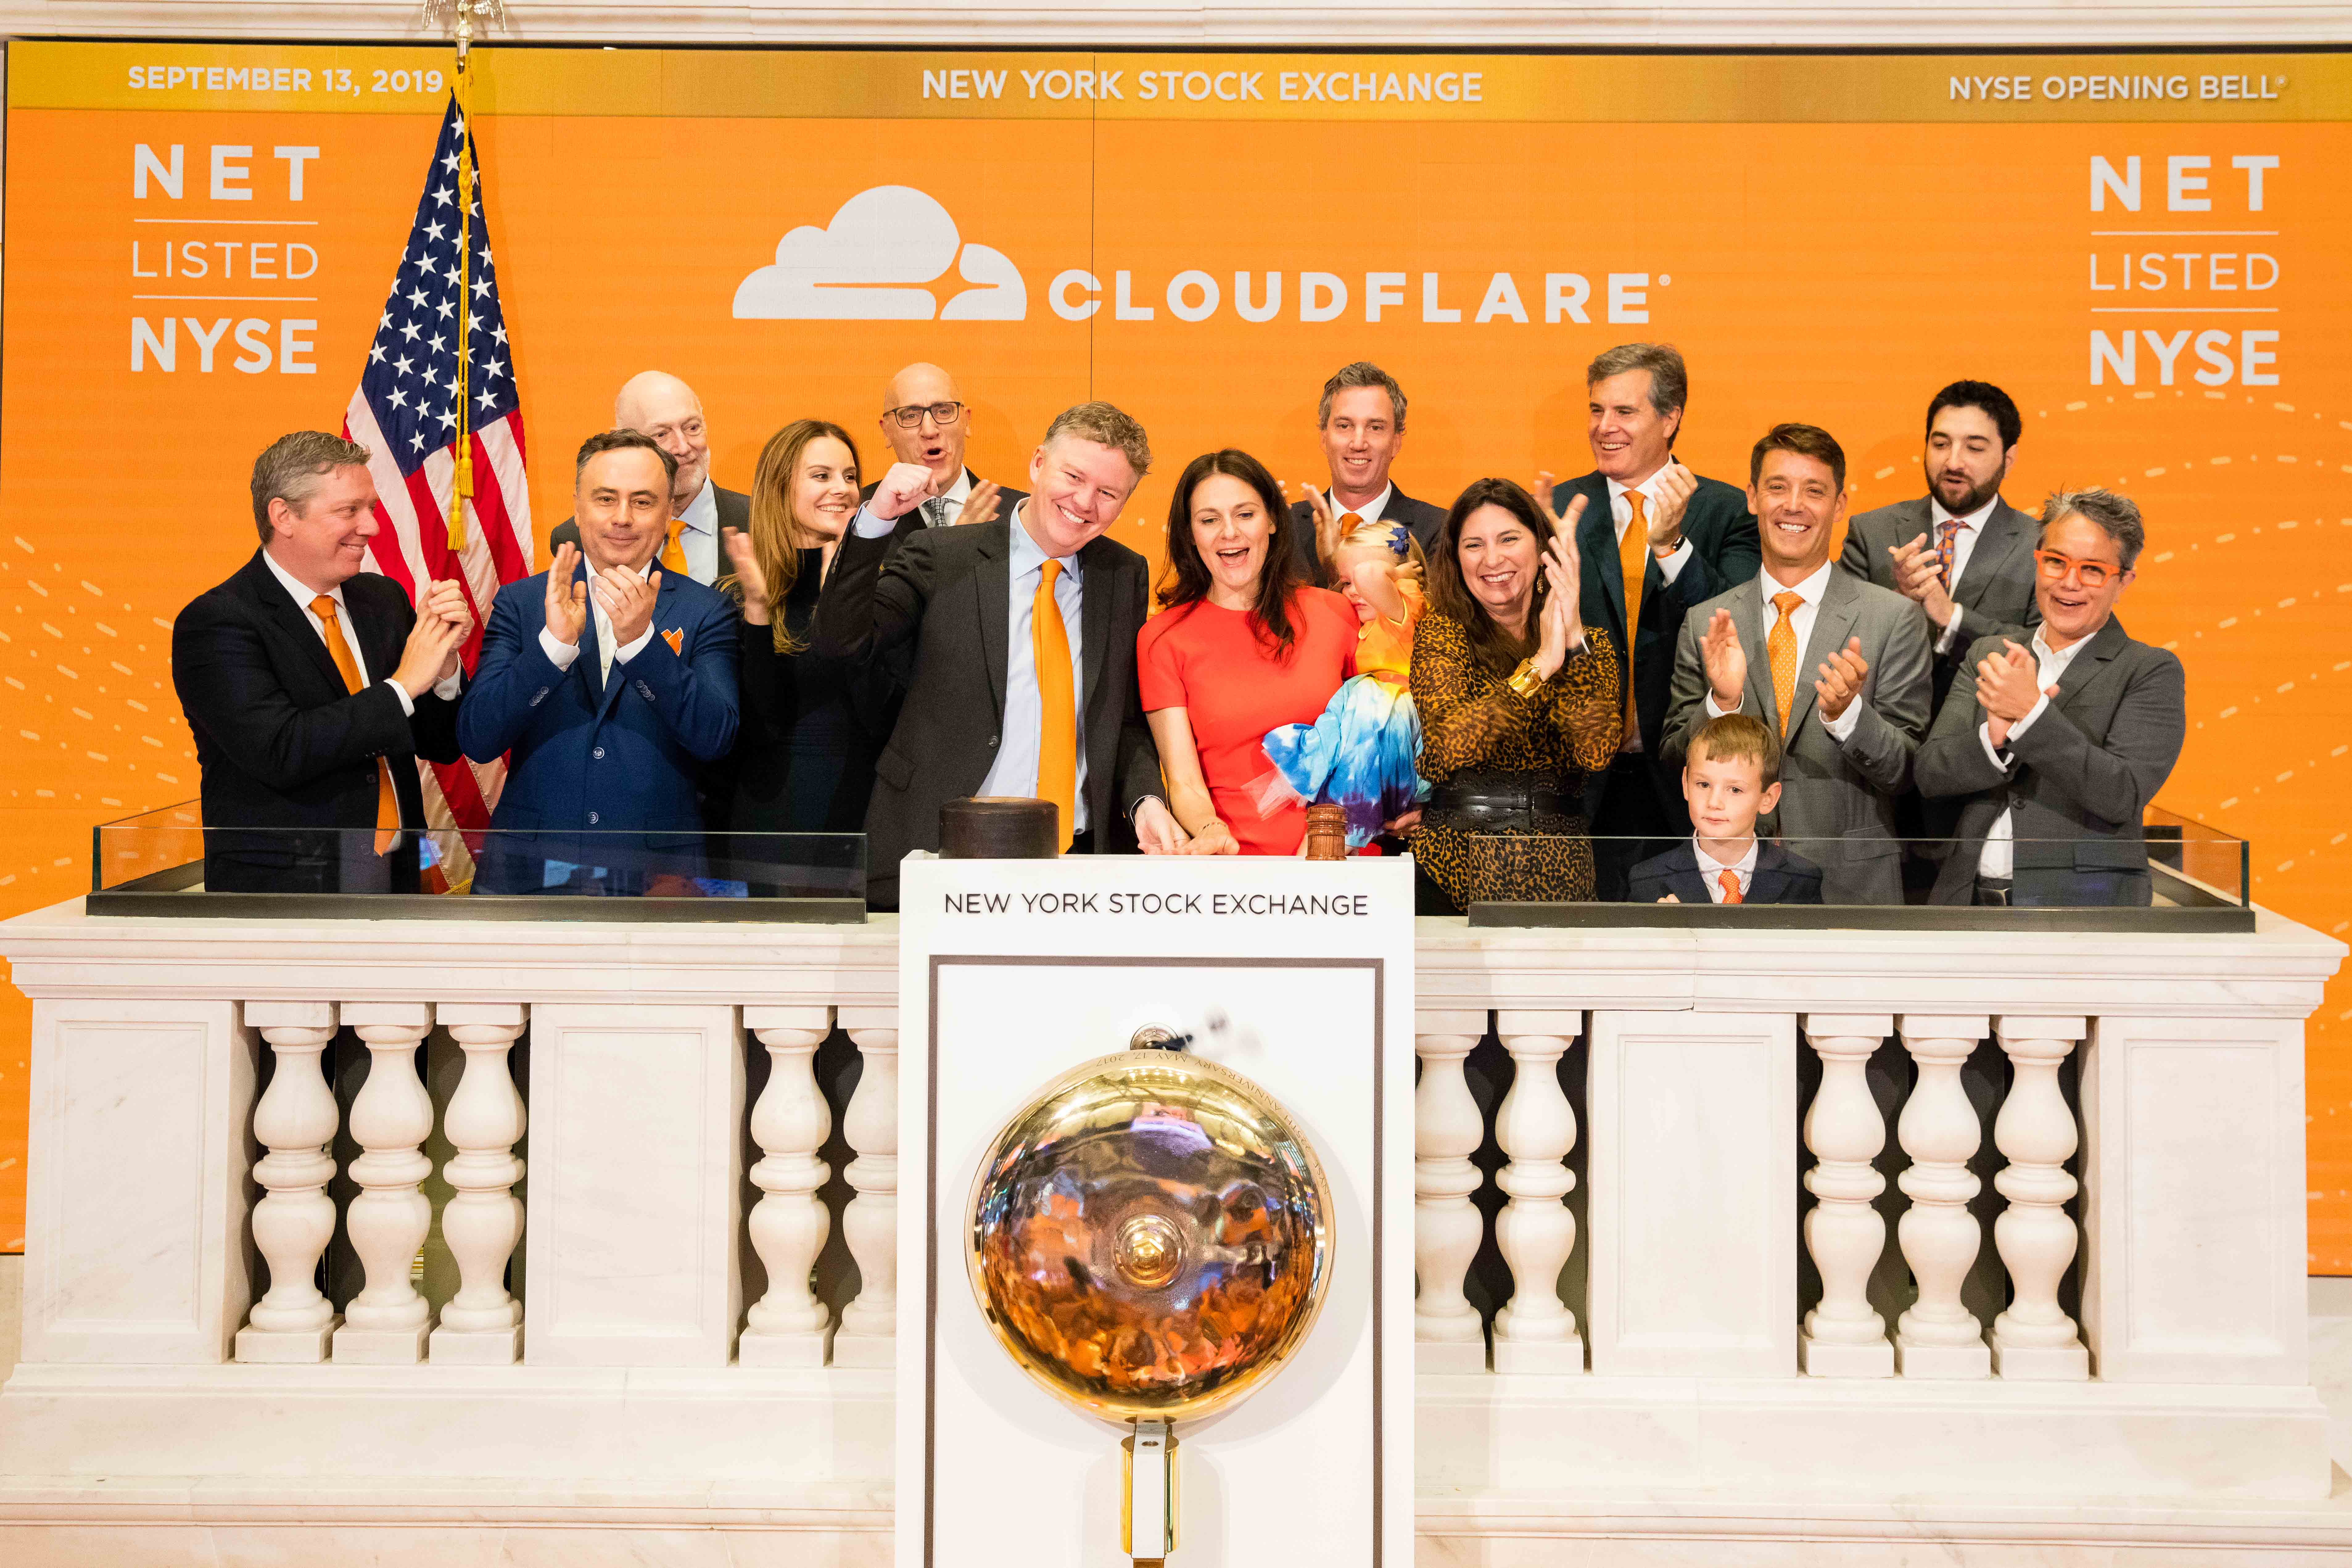 Cloudflare went public on the New York Stock Exchange on Friday. CEO Matthew Prince rang the opening bell with his cofounder and chief operating office, Michelle Zatlyn (both pictured in center).